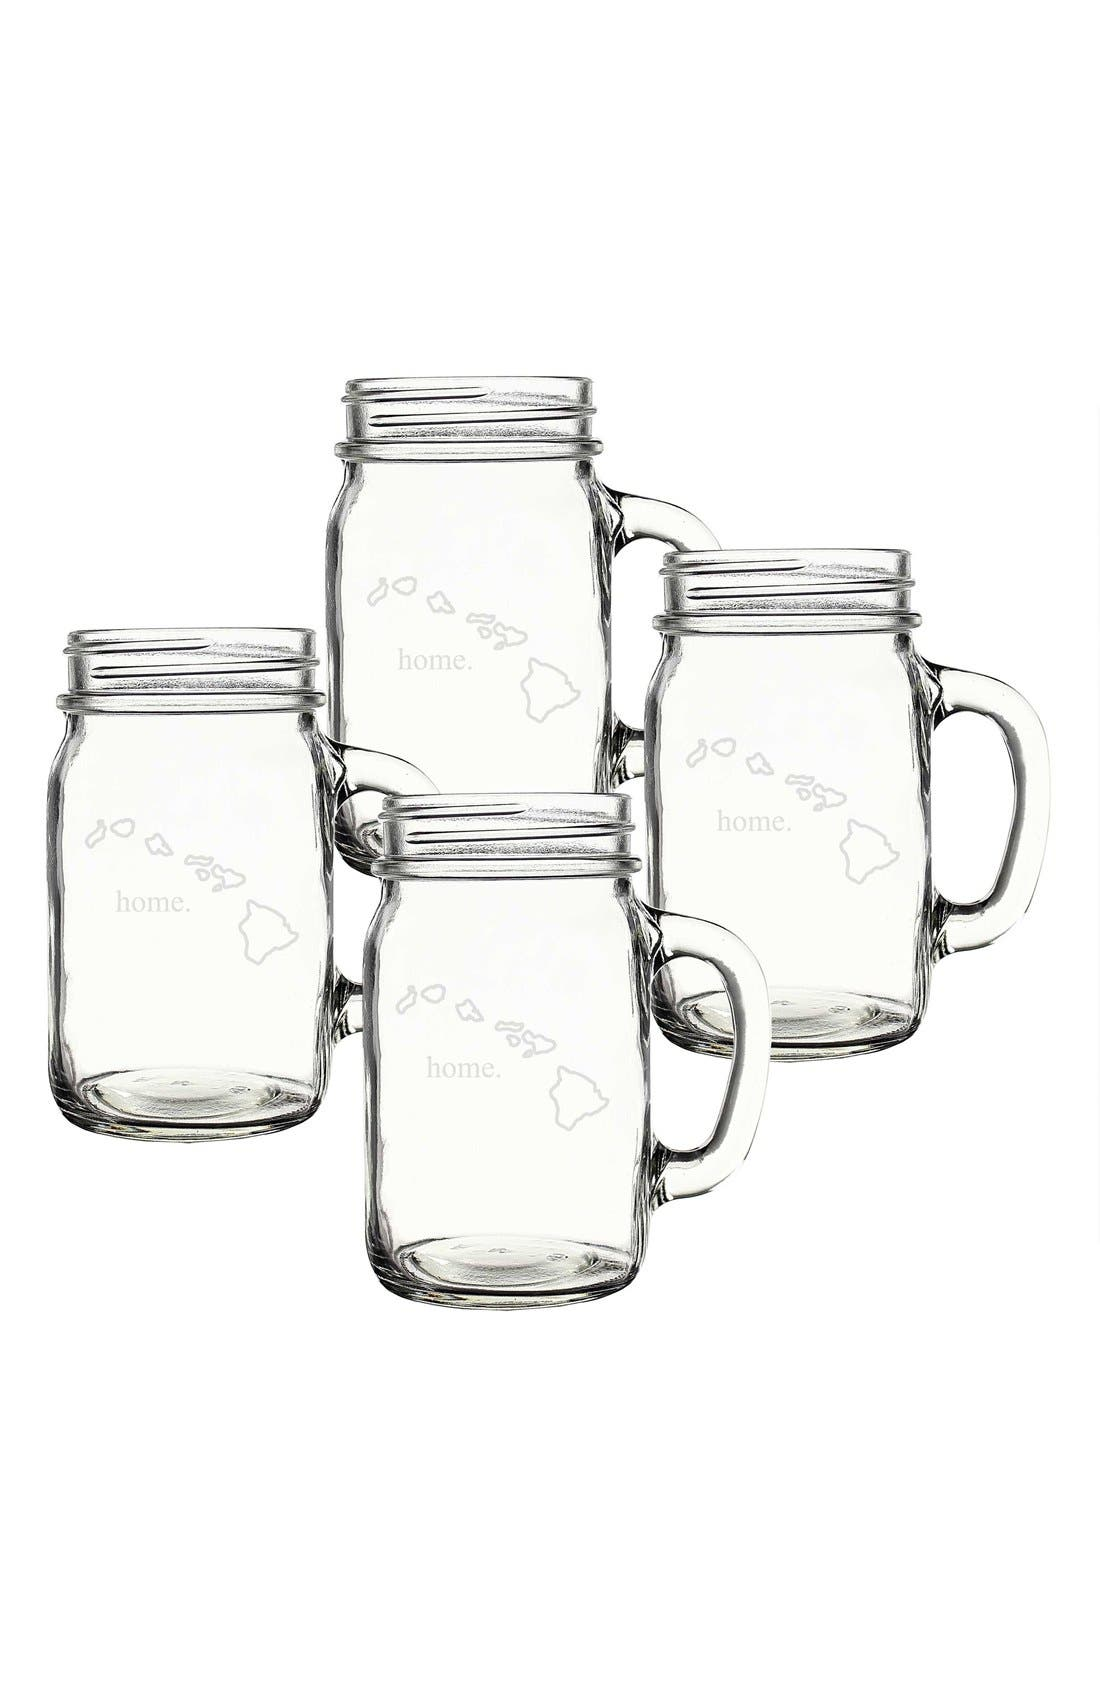 Cathy's Concepts 'Home State' Glass Drinking Jars with Handles (Set of 4)